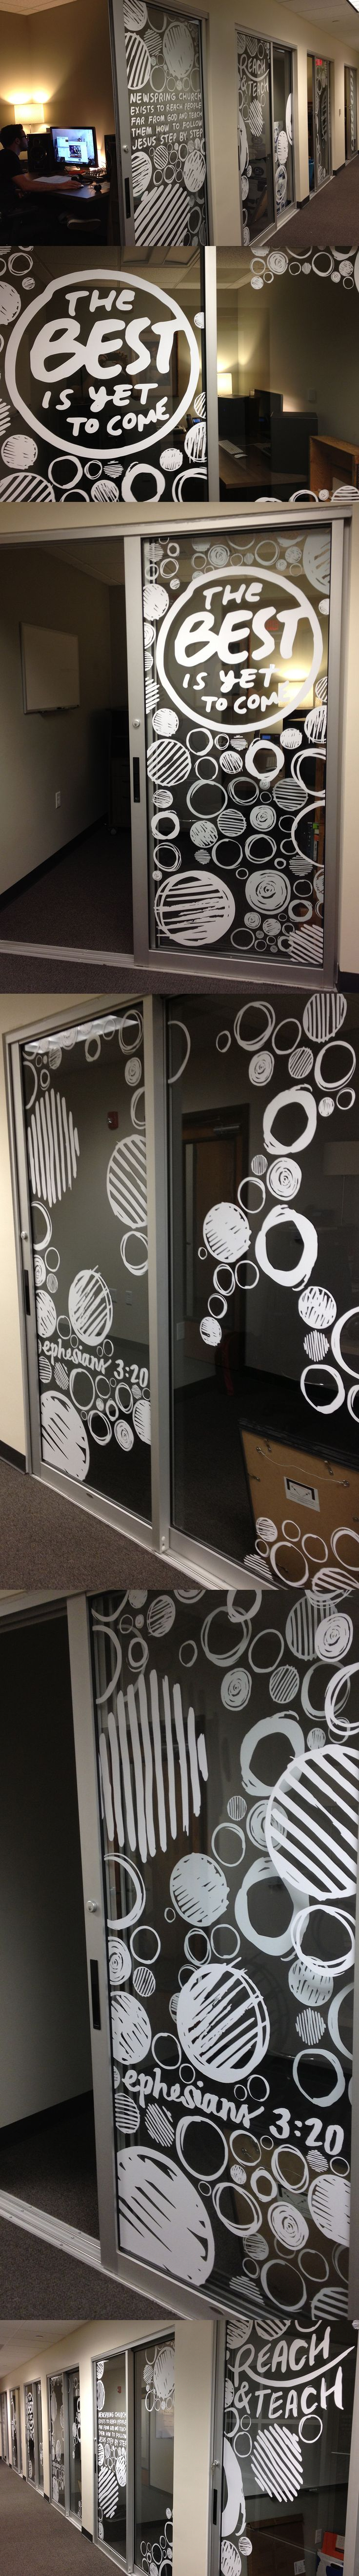 Office Window Clings : Best images about office window graphics on pinterest